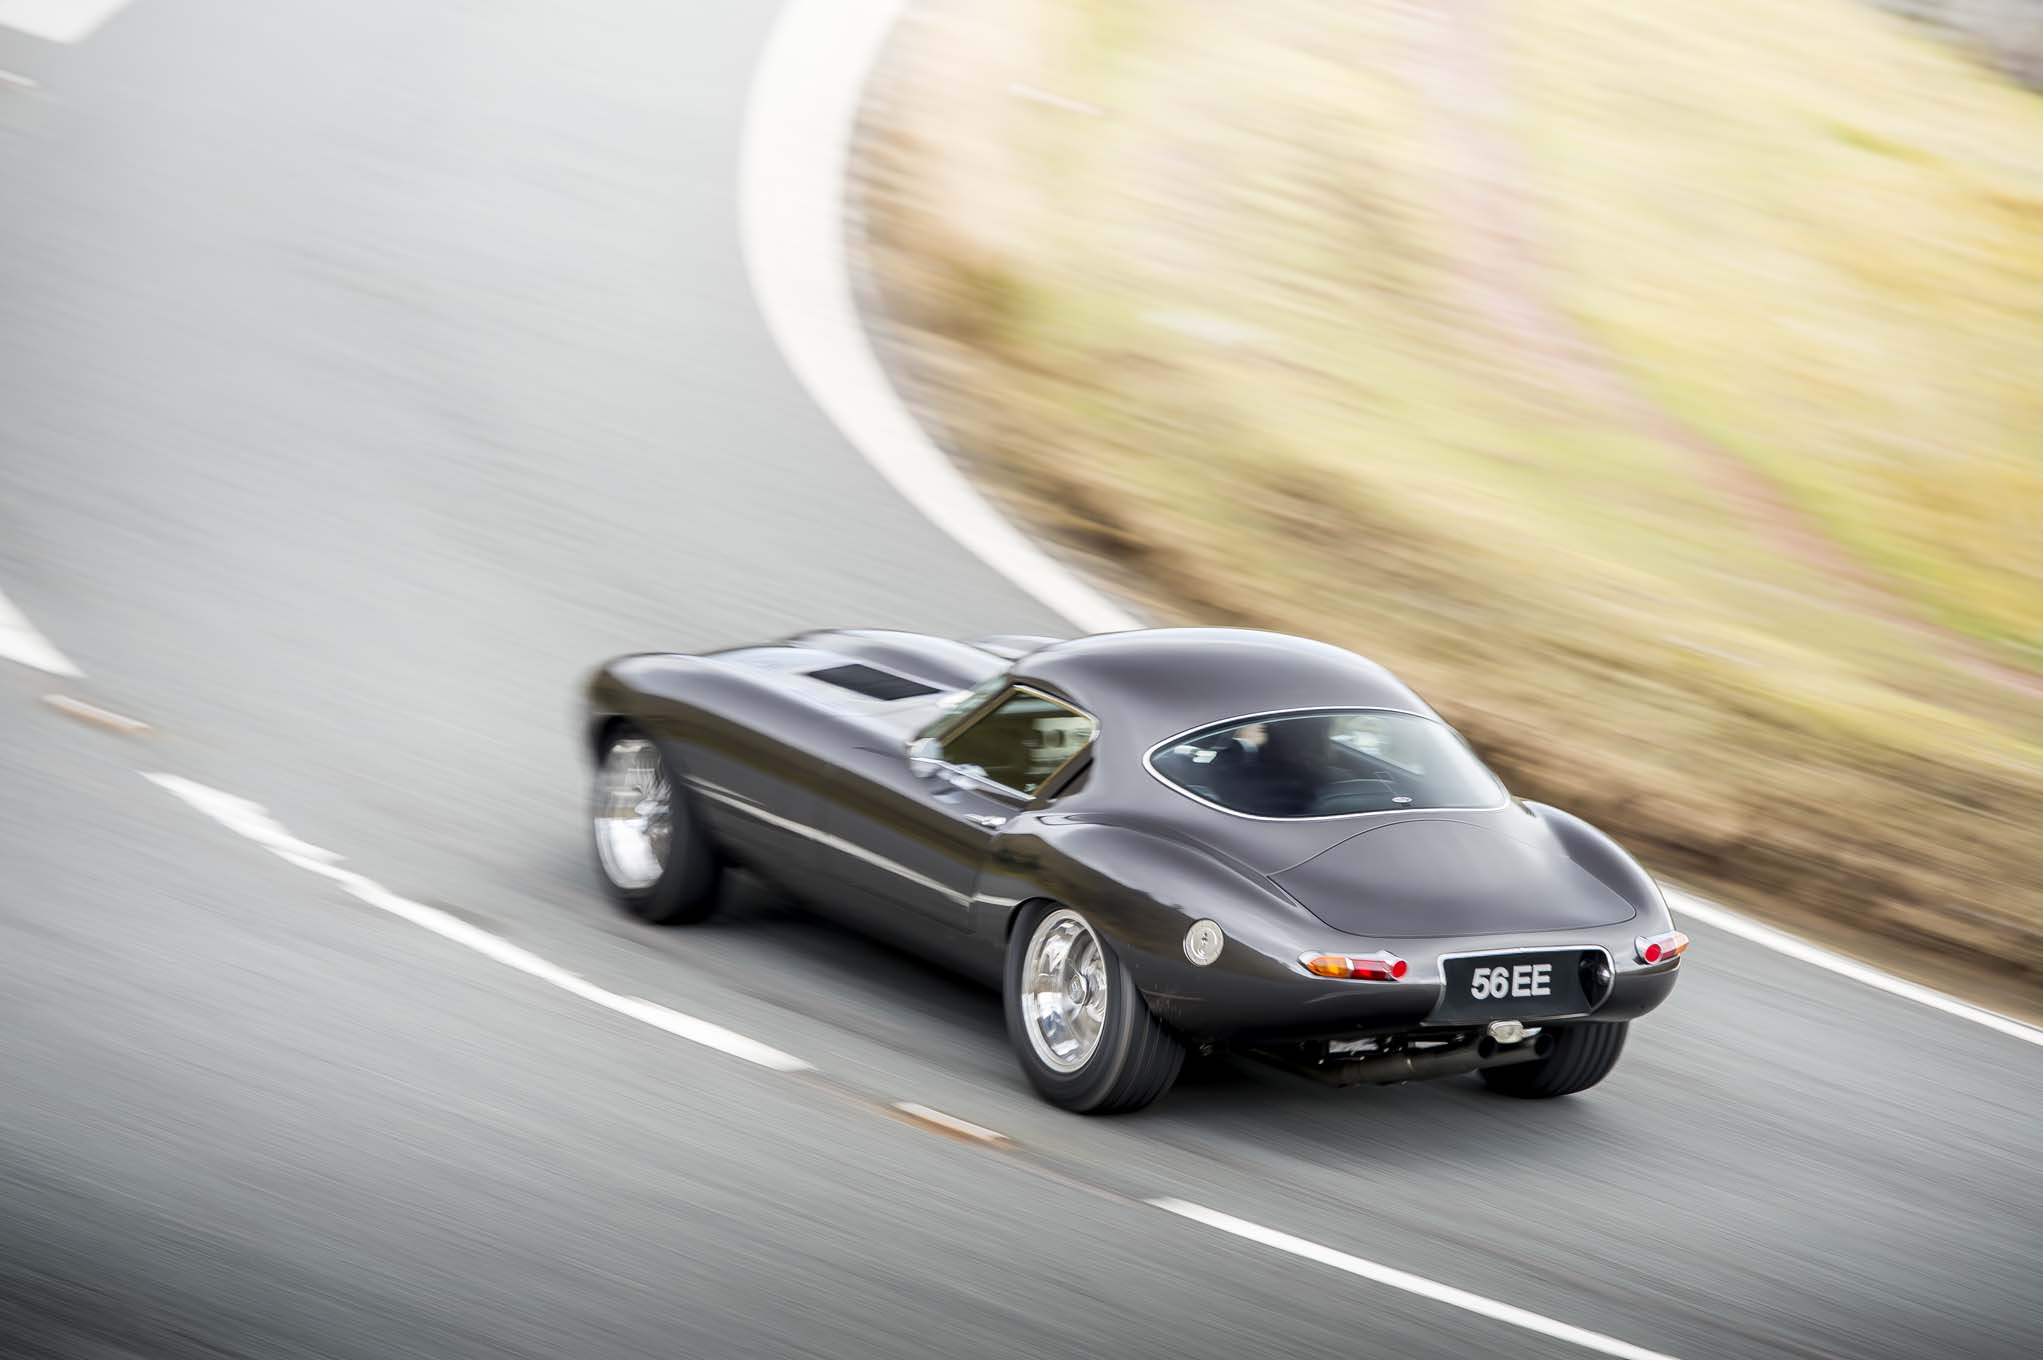 Eagle Low Drag GT. Photographed for Eagle E-Type by James Lipman